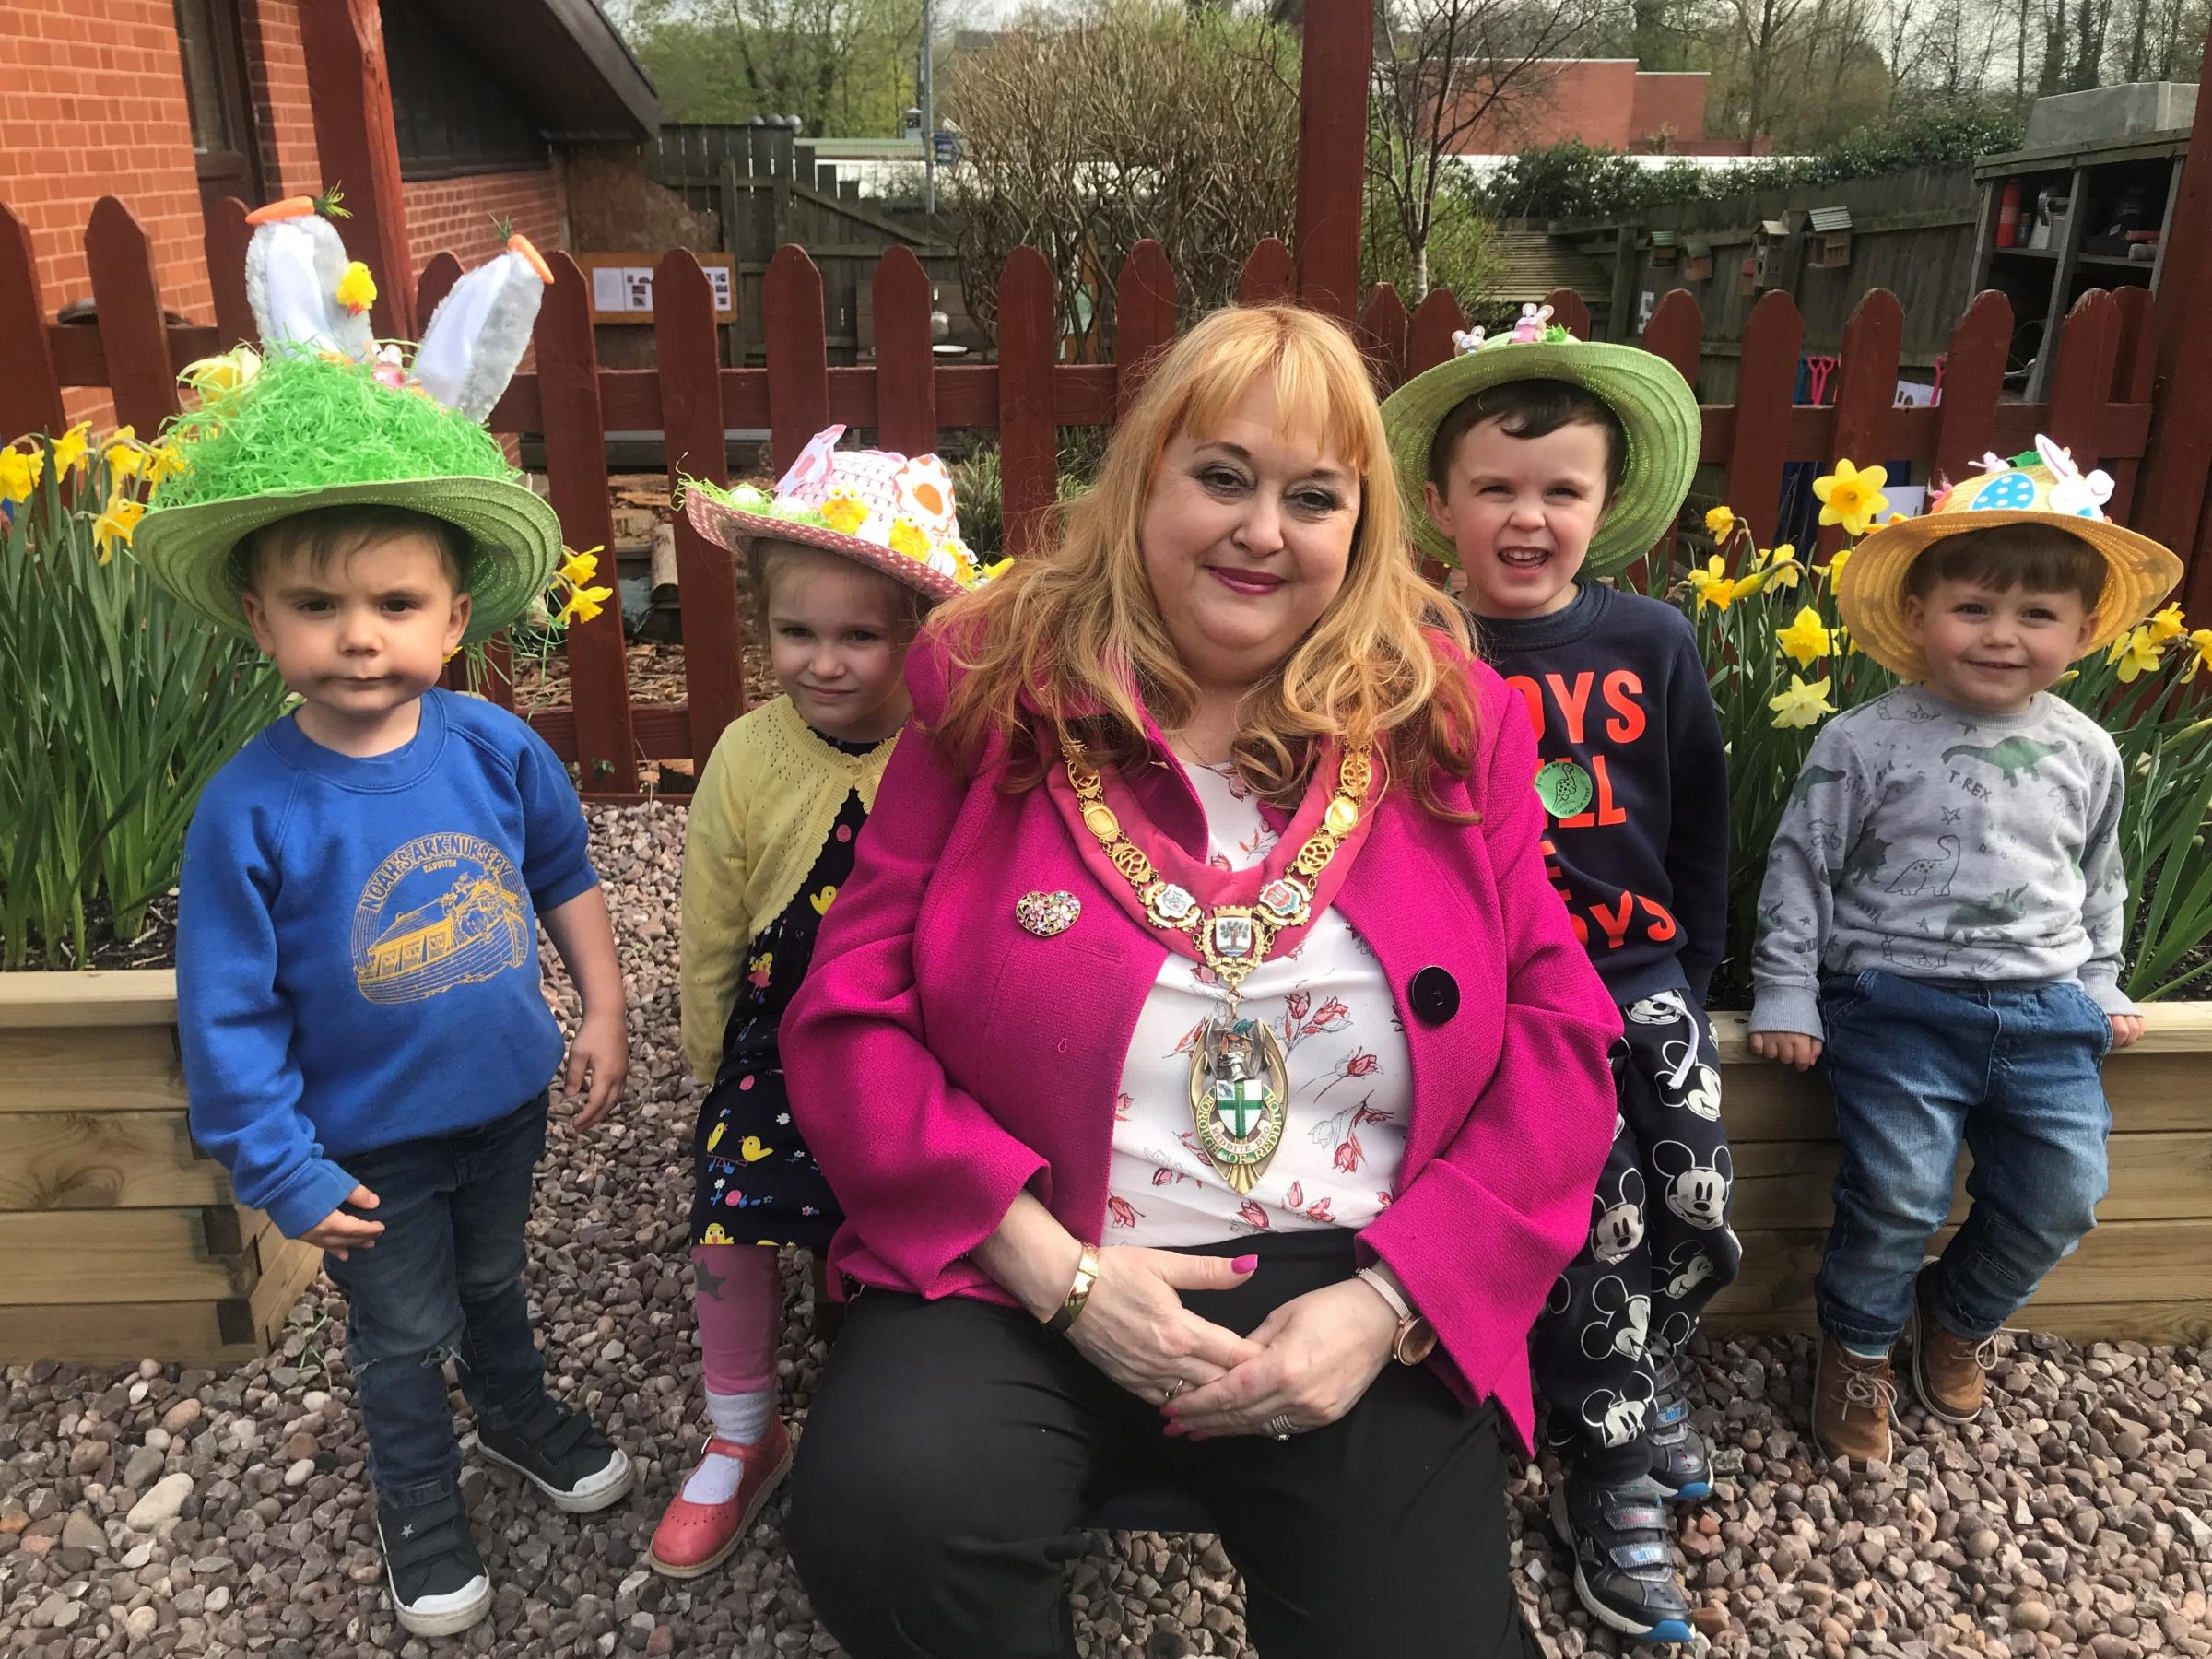 Mayor Cllr Juliet Brunner with some of the contestants of the Easter Bonnet Parade.